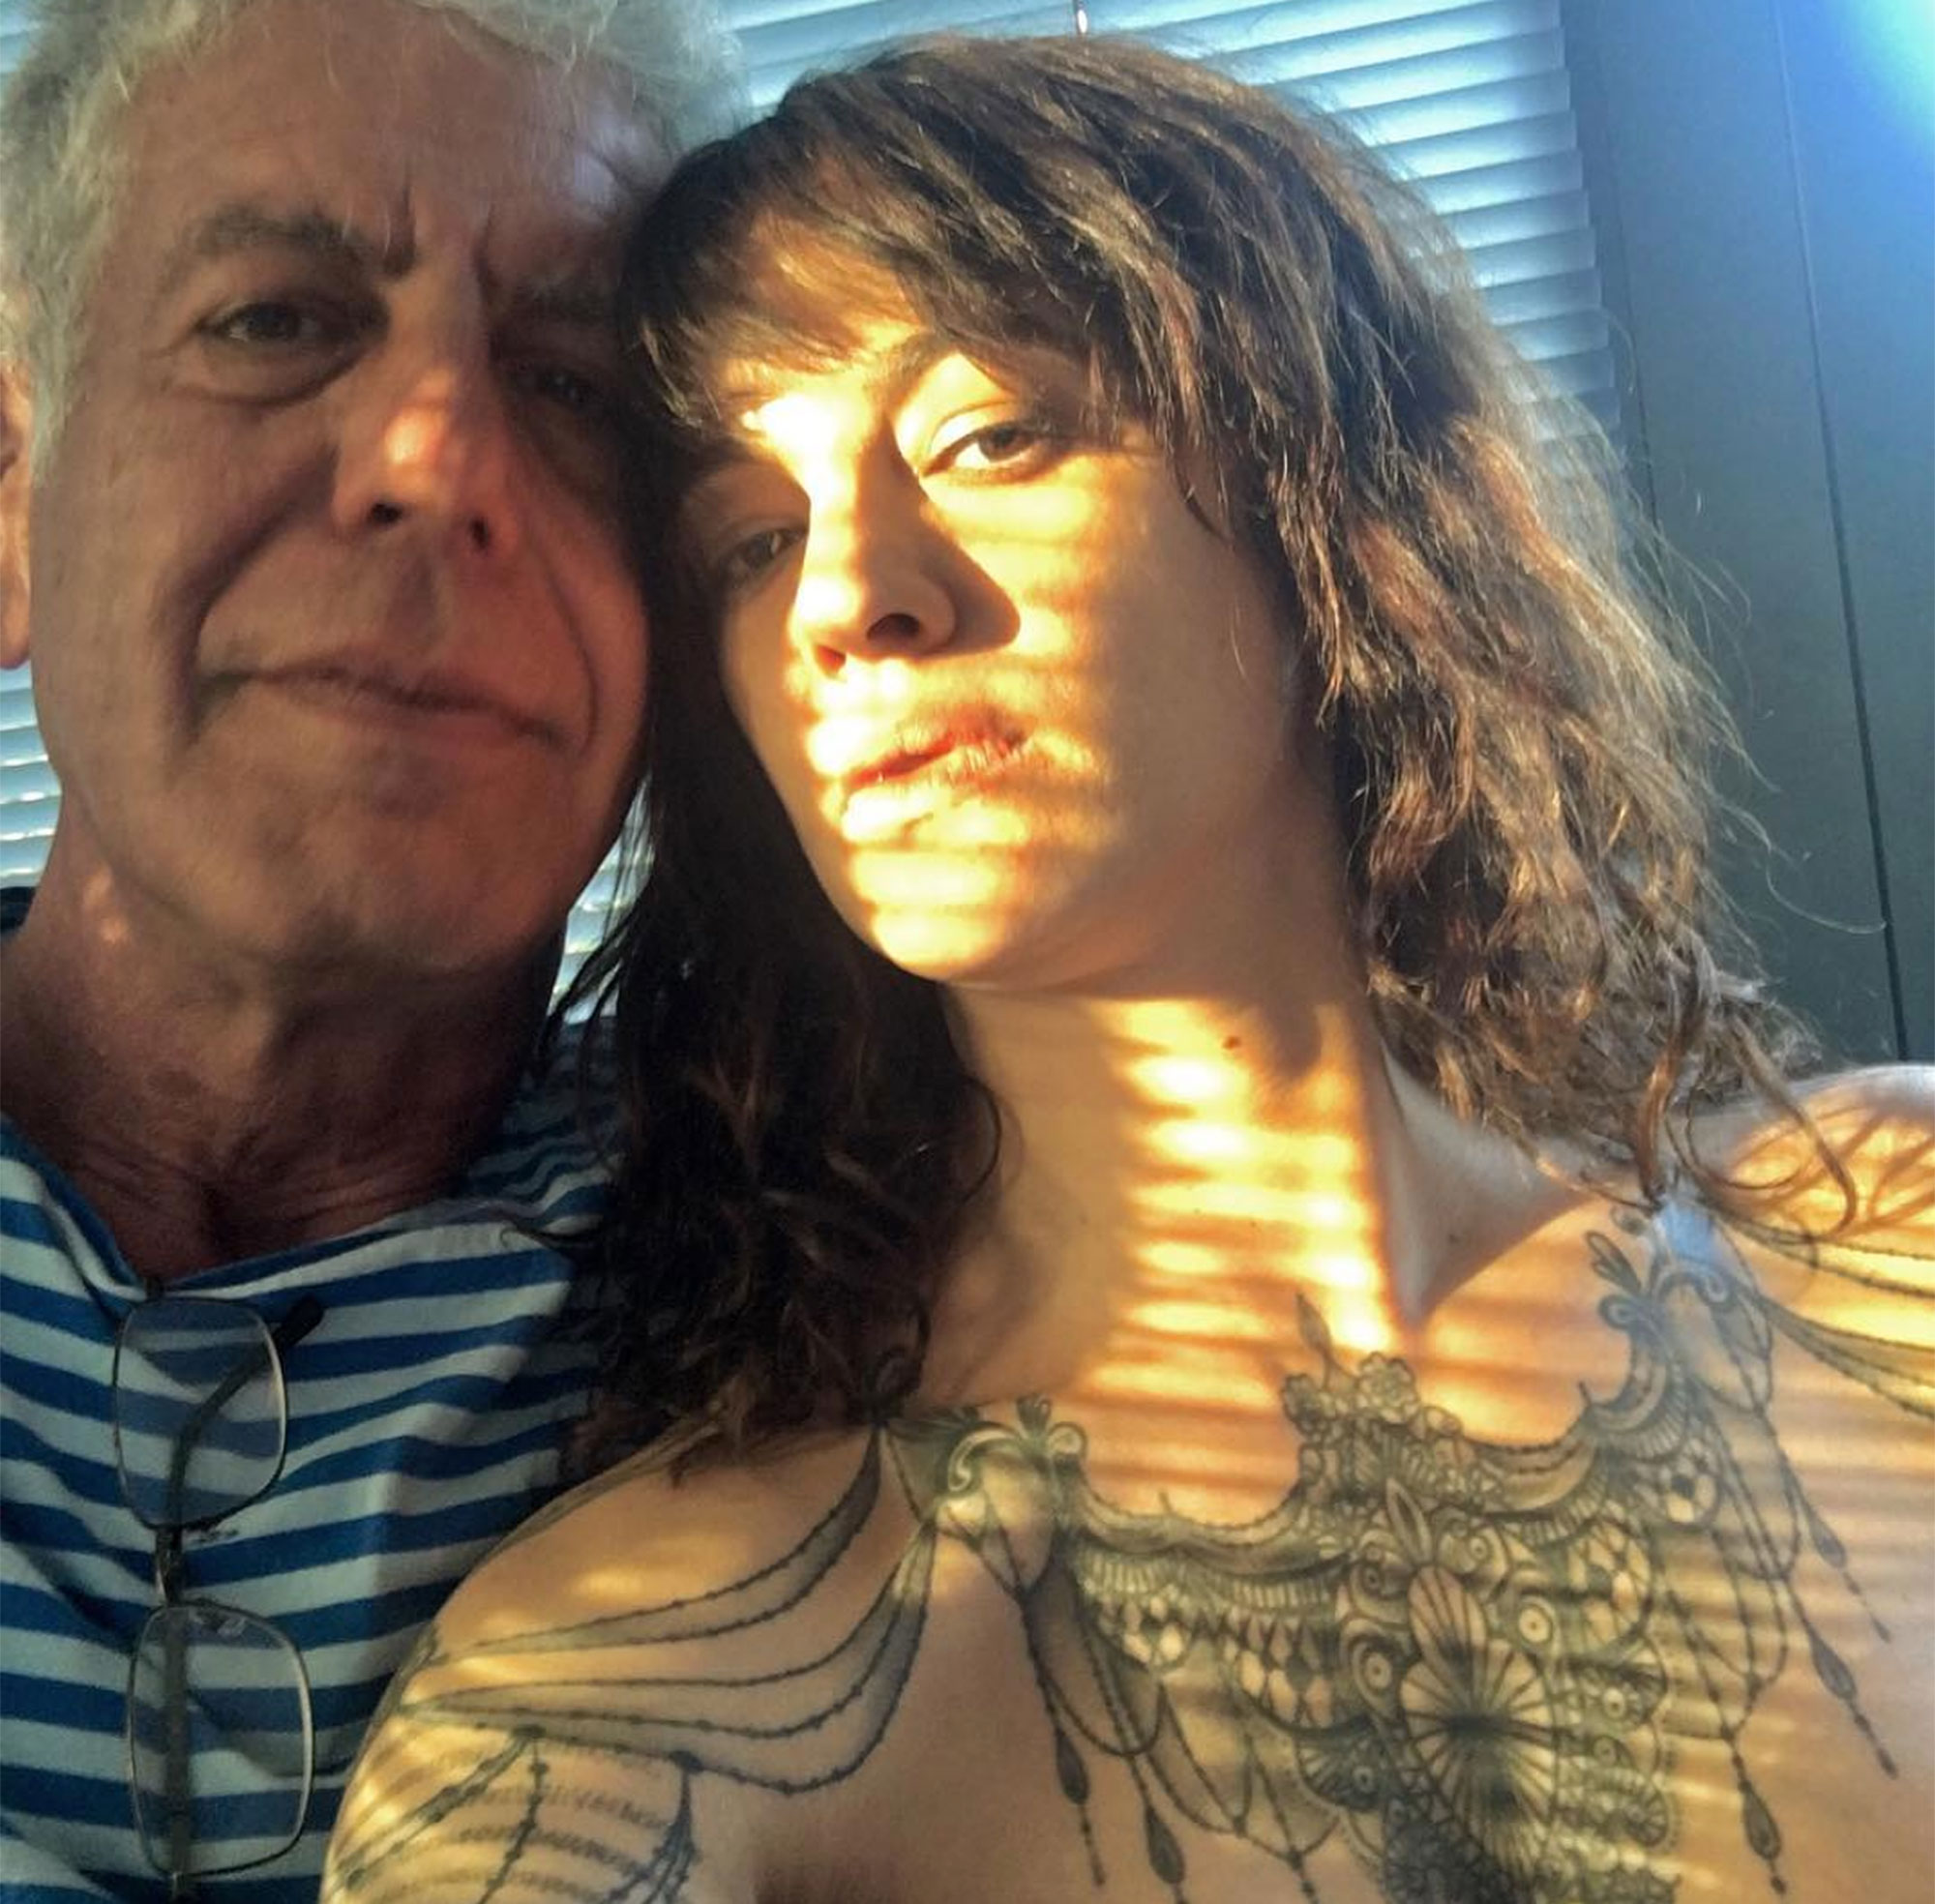 anthony-bourdain-asia-argento-1